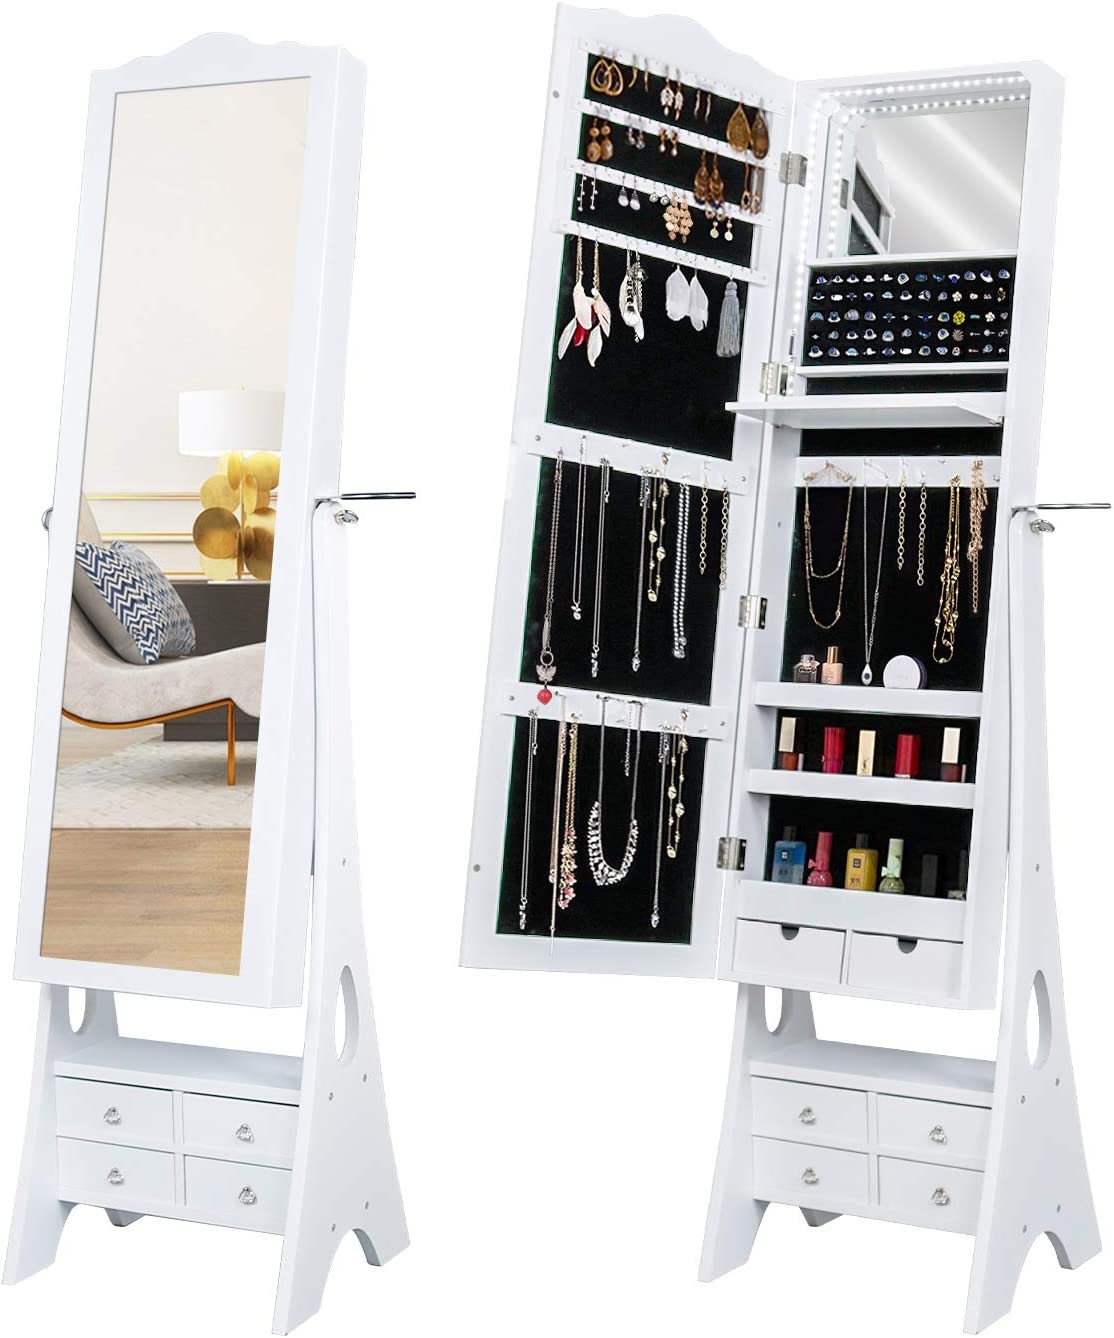 Led Mirrored Jewelry Cabinet Organizer Full Length Standing Jewelry Storage Armoire With Makeup Tray Large Capacity 6 Drawers 3 Adjustable Angle And Hair Dryer Storage White Home Kitchen